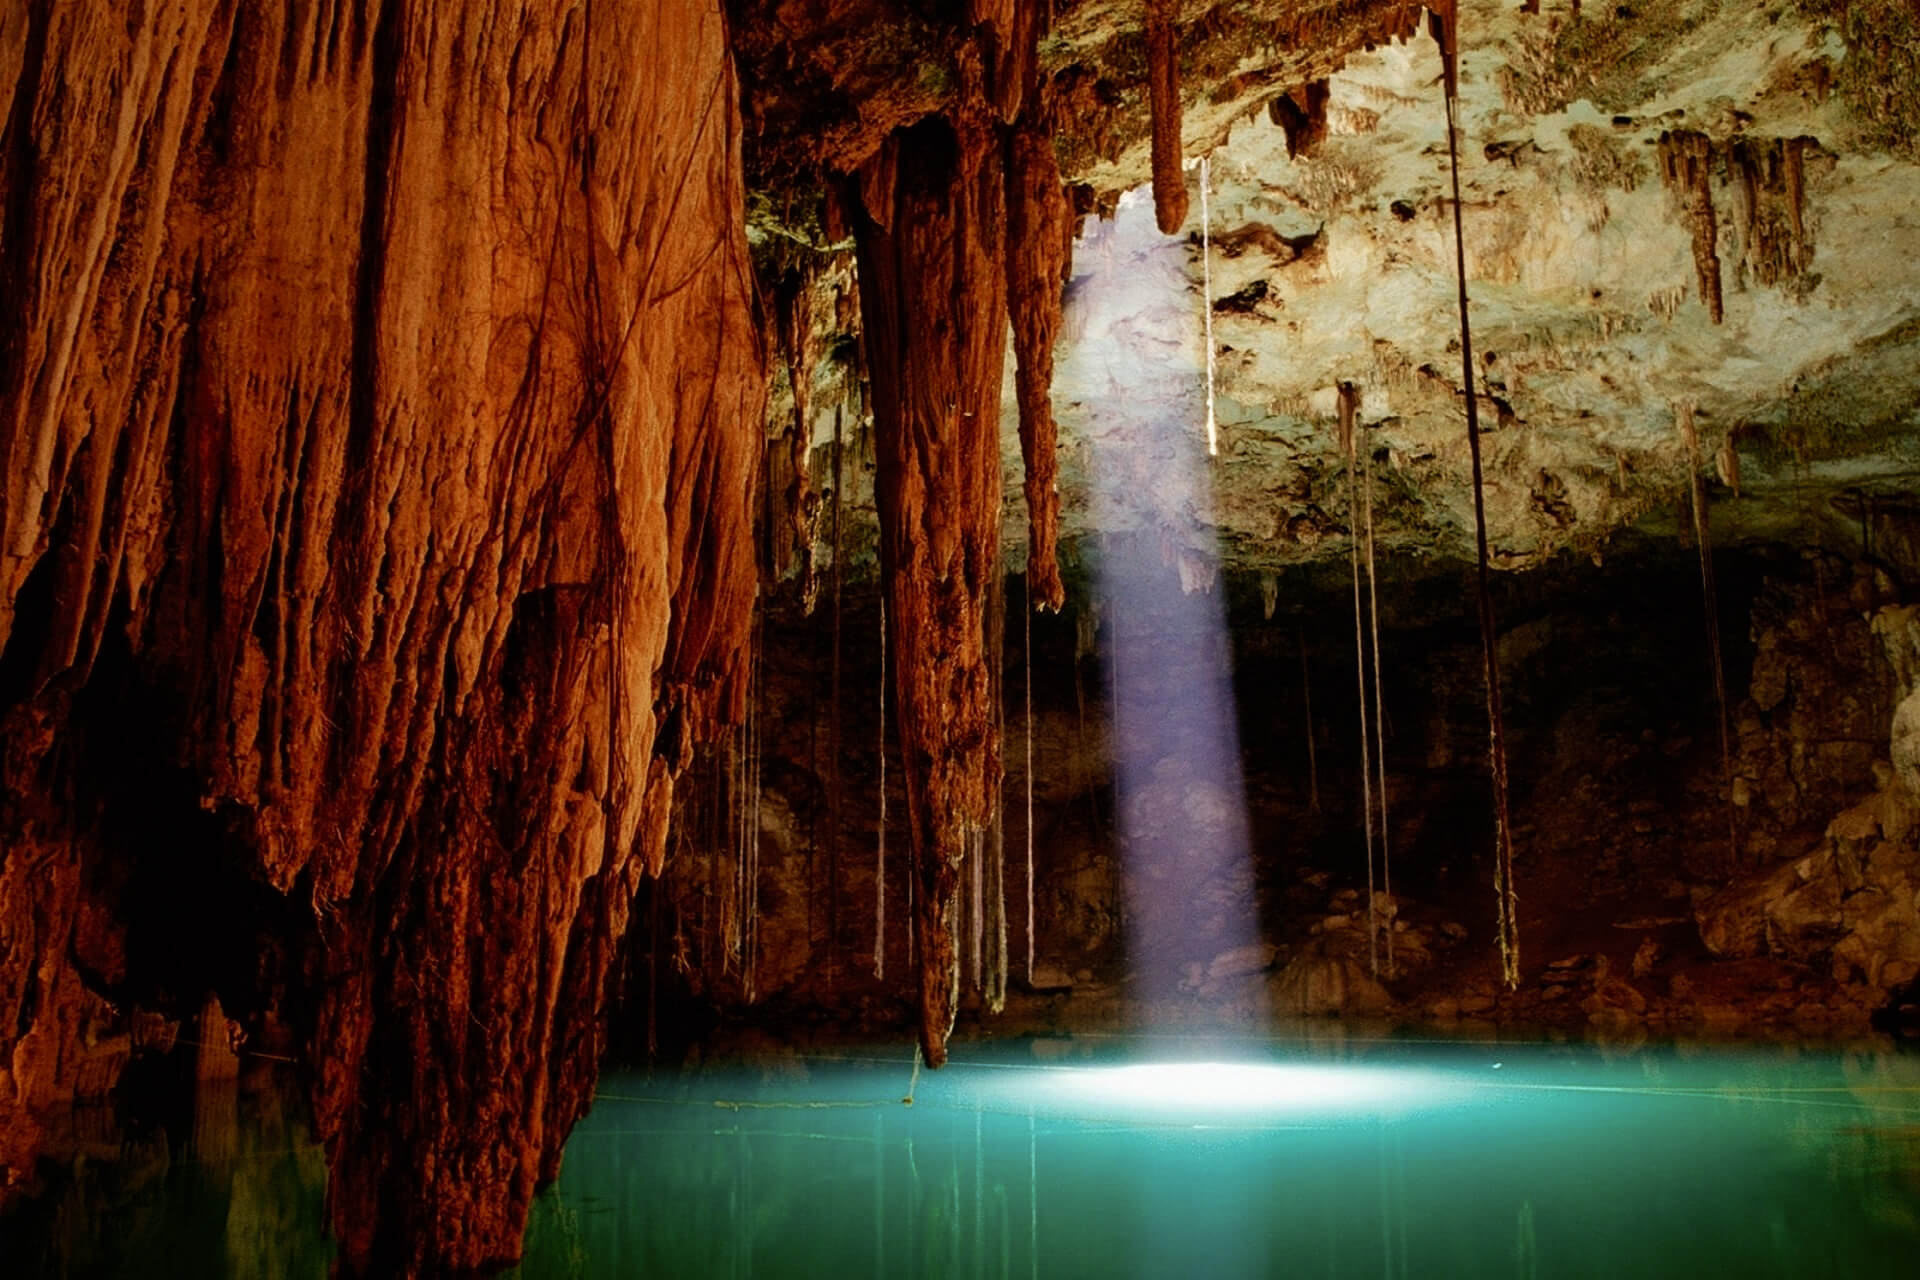 Caves in Mexico